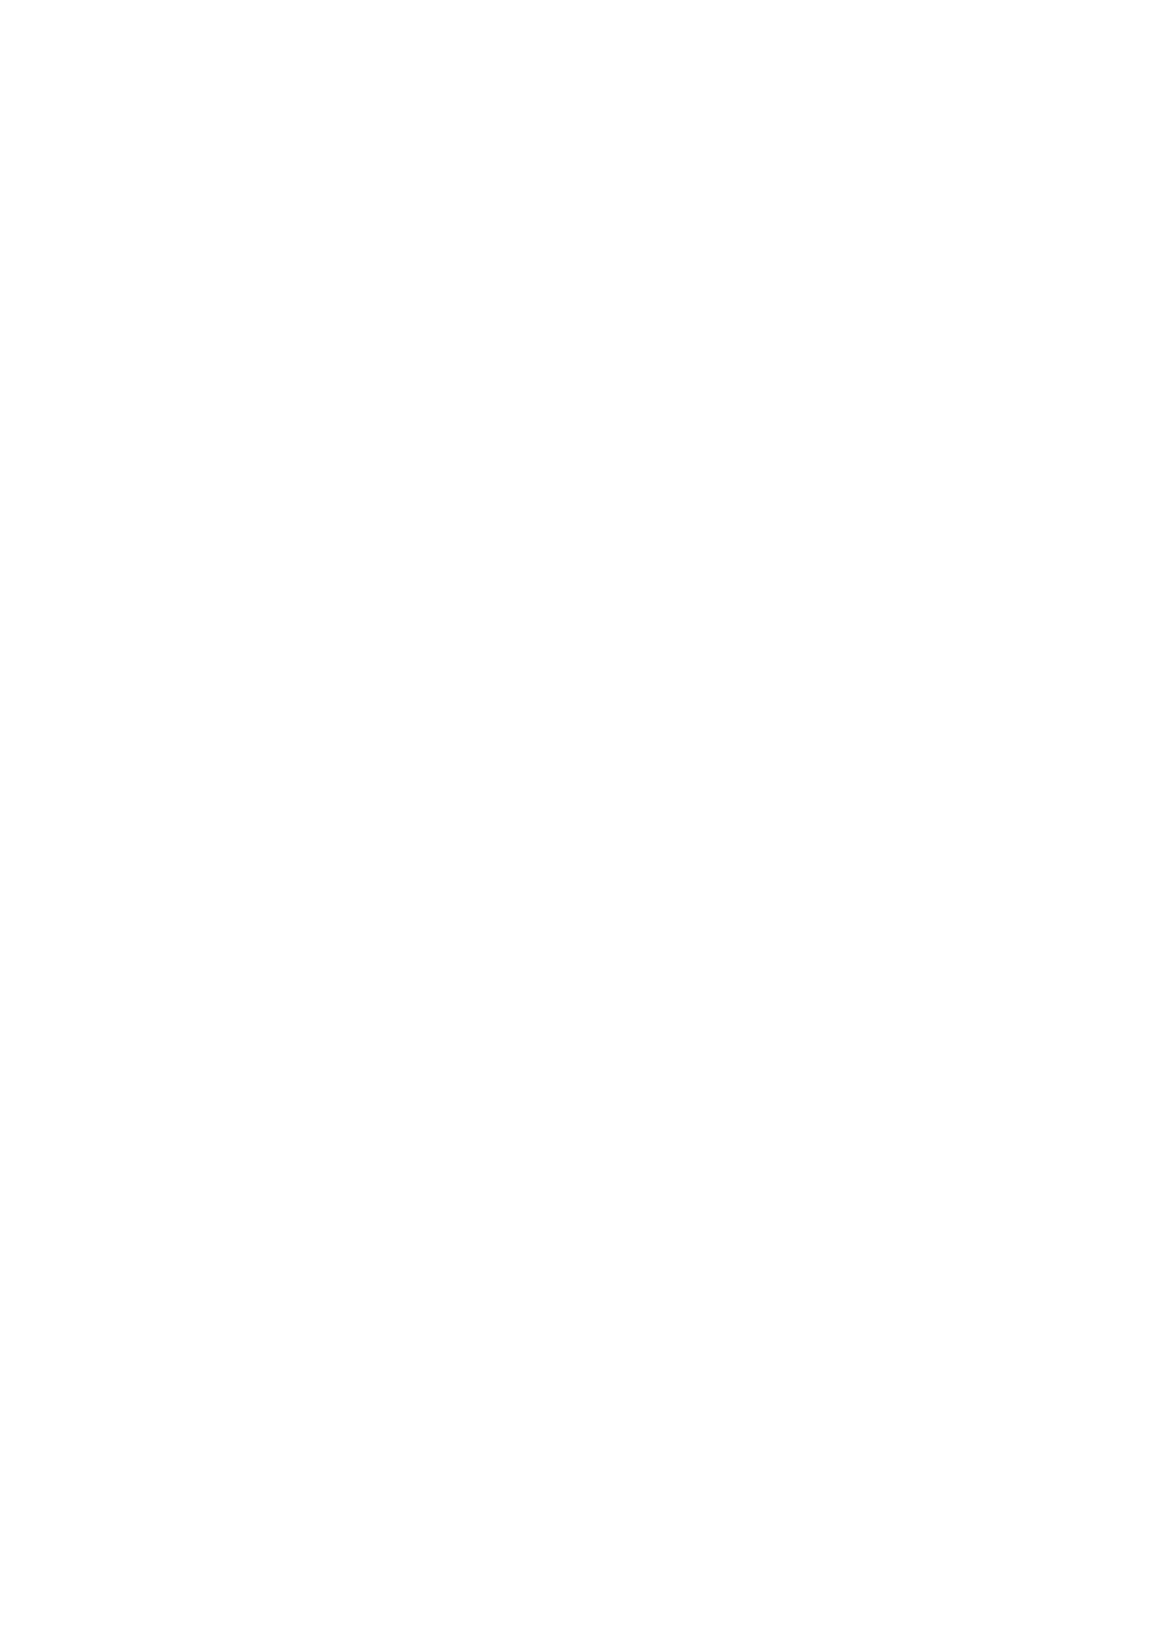 Markus Berger Photography